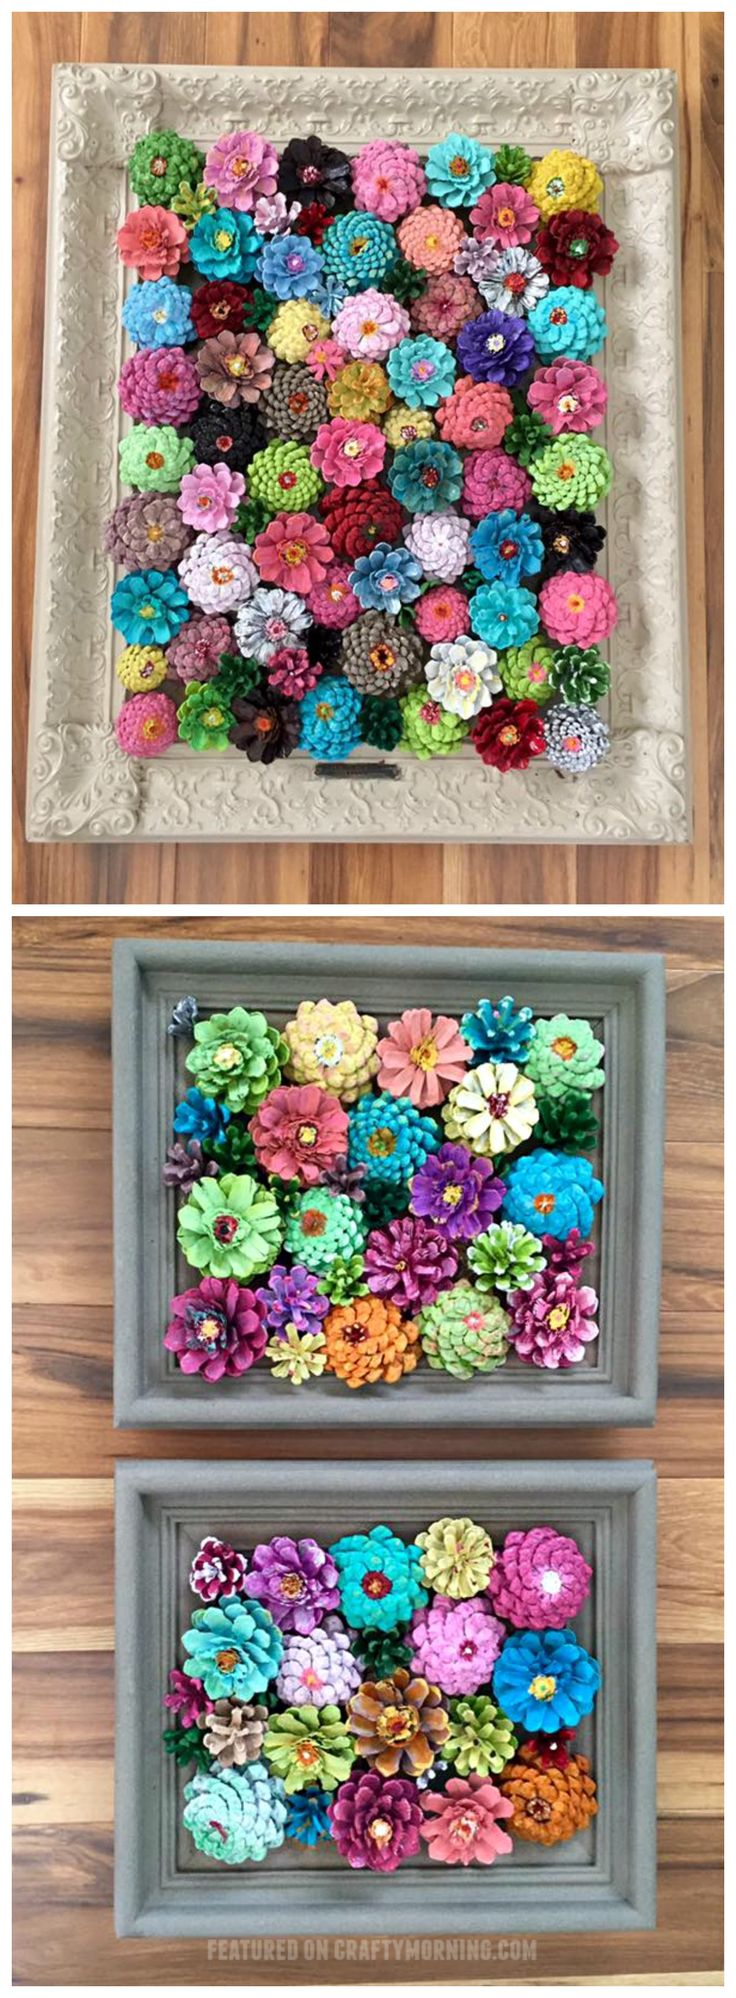 Craft Best 25 Crafts Ideas On Pinterest Craft Ideas Diy And Crafts